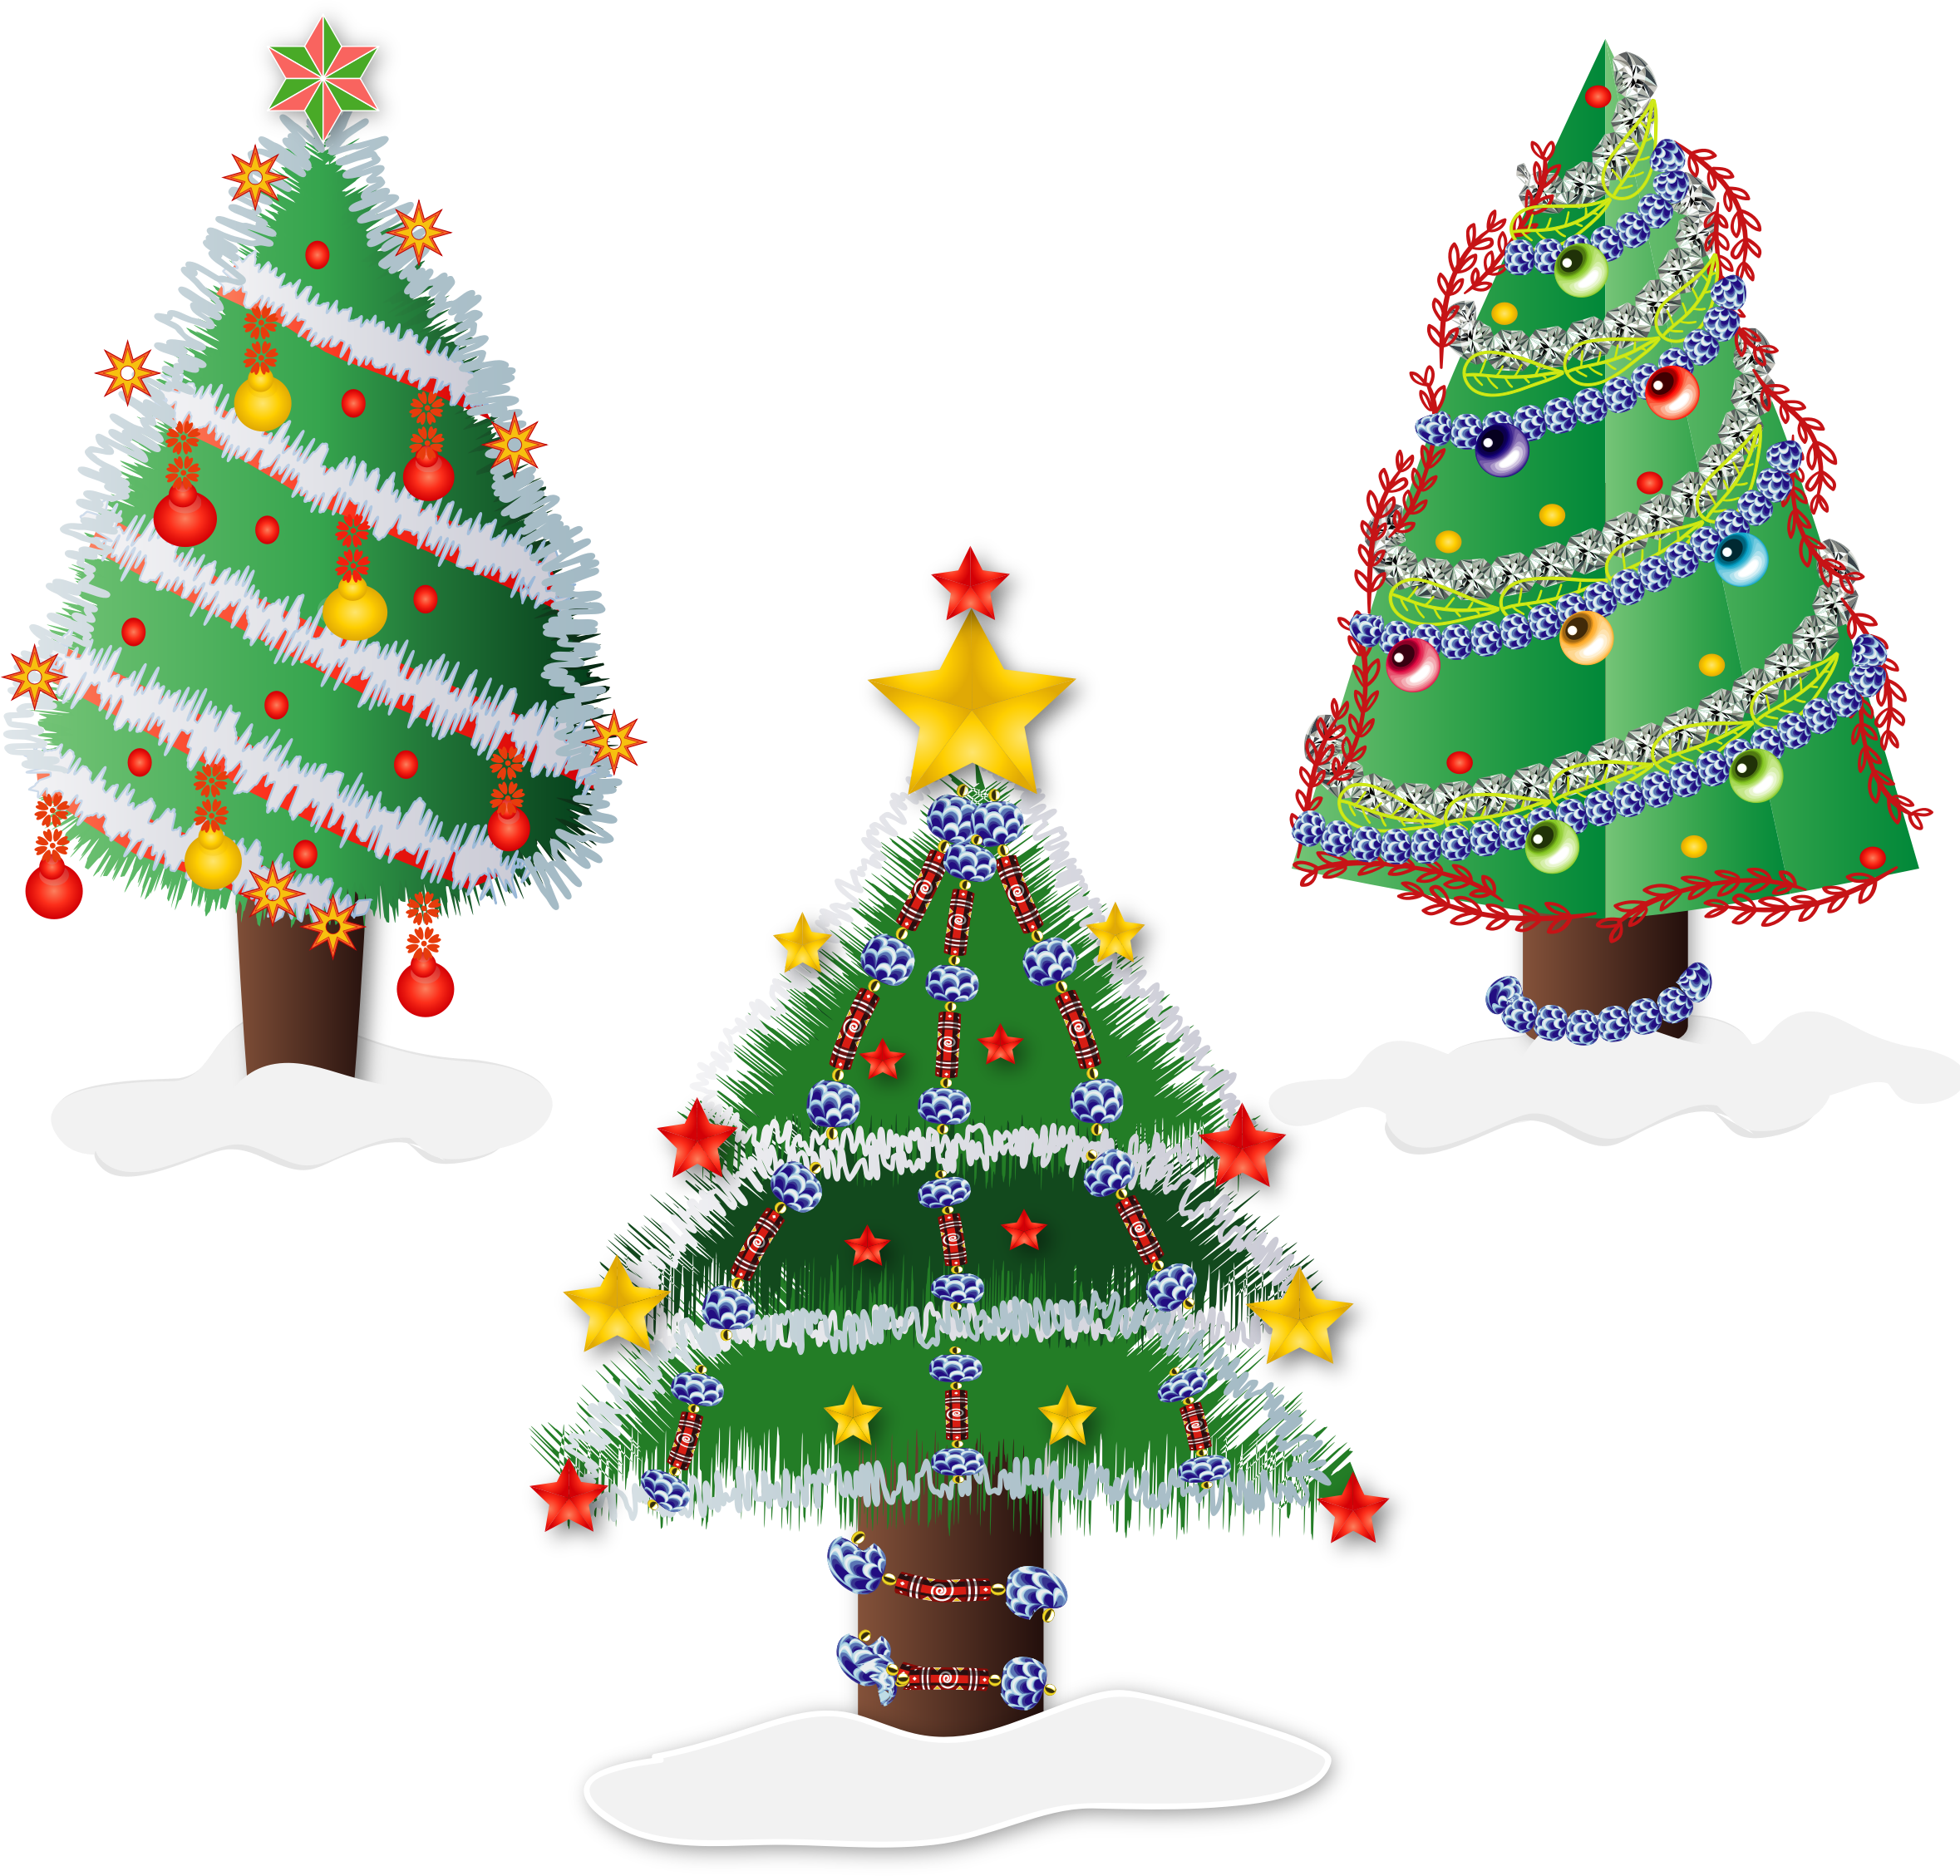 Sunny clipart christmas. Trees icons png free